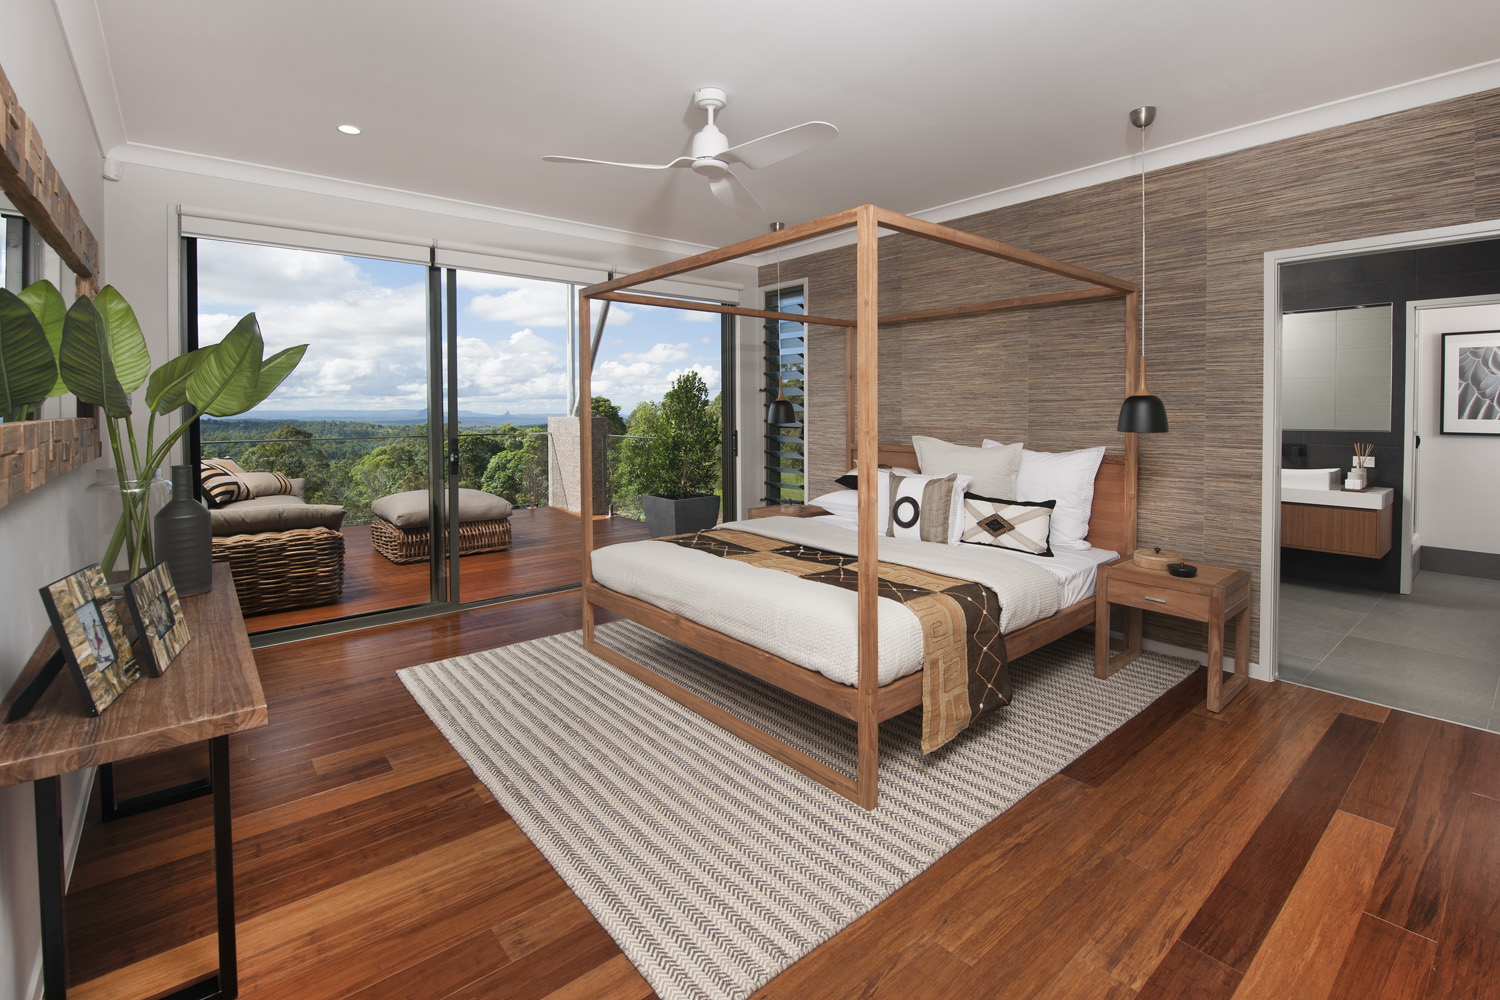 Grand designs australia eco fiend completehome for Grand bedroom designs